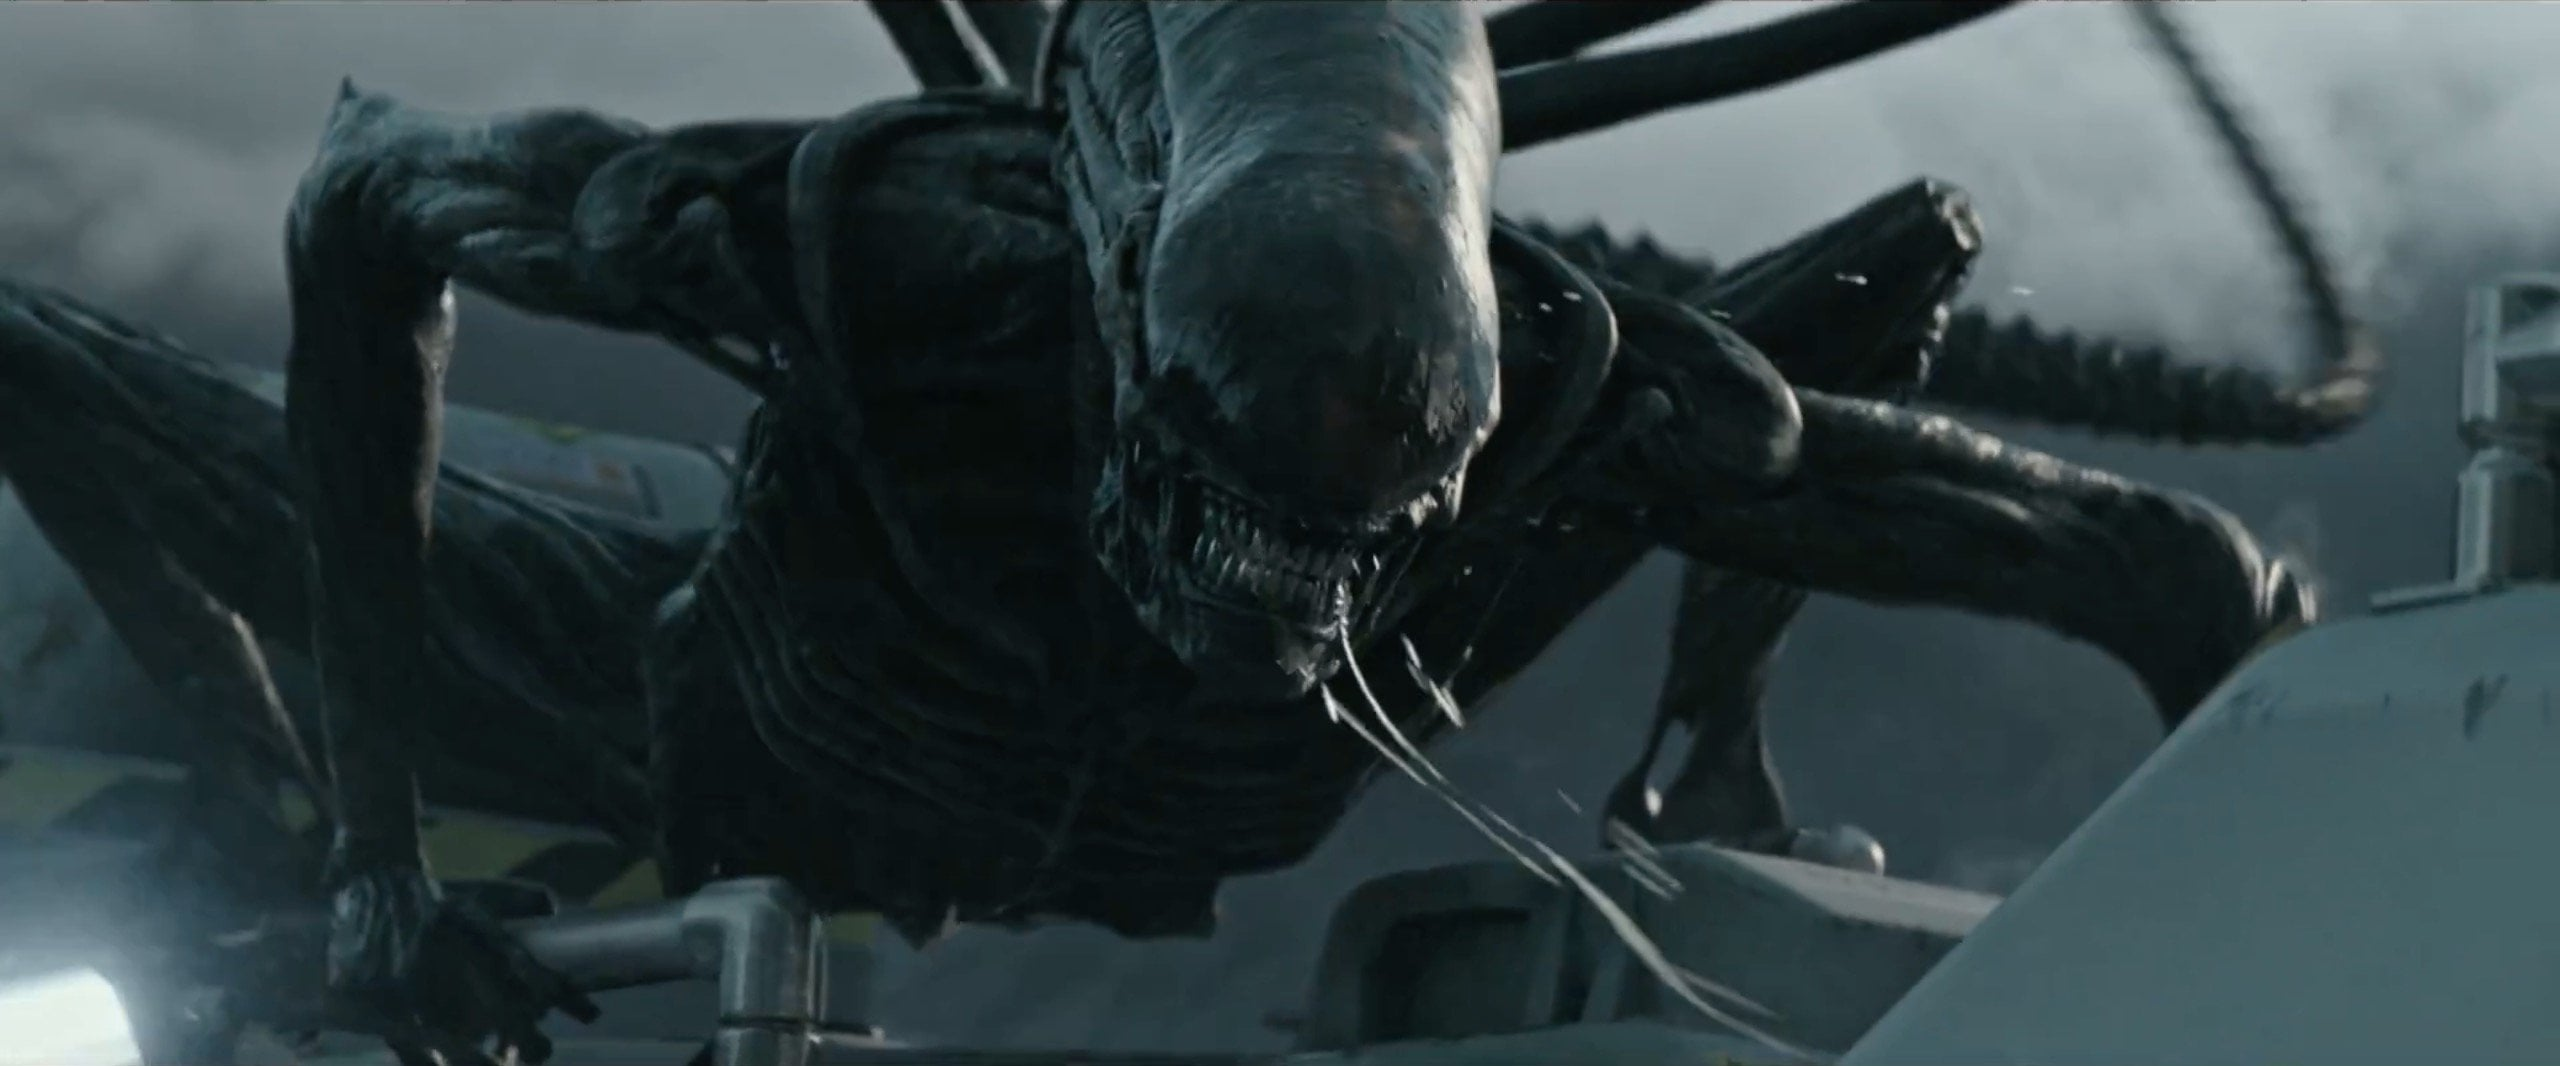 Alien: Covenant is a refreshing return to form for Ridley Scott